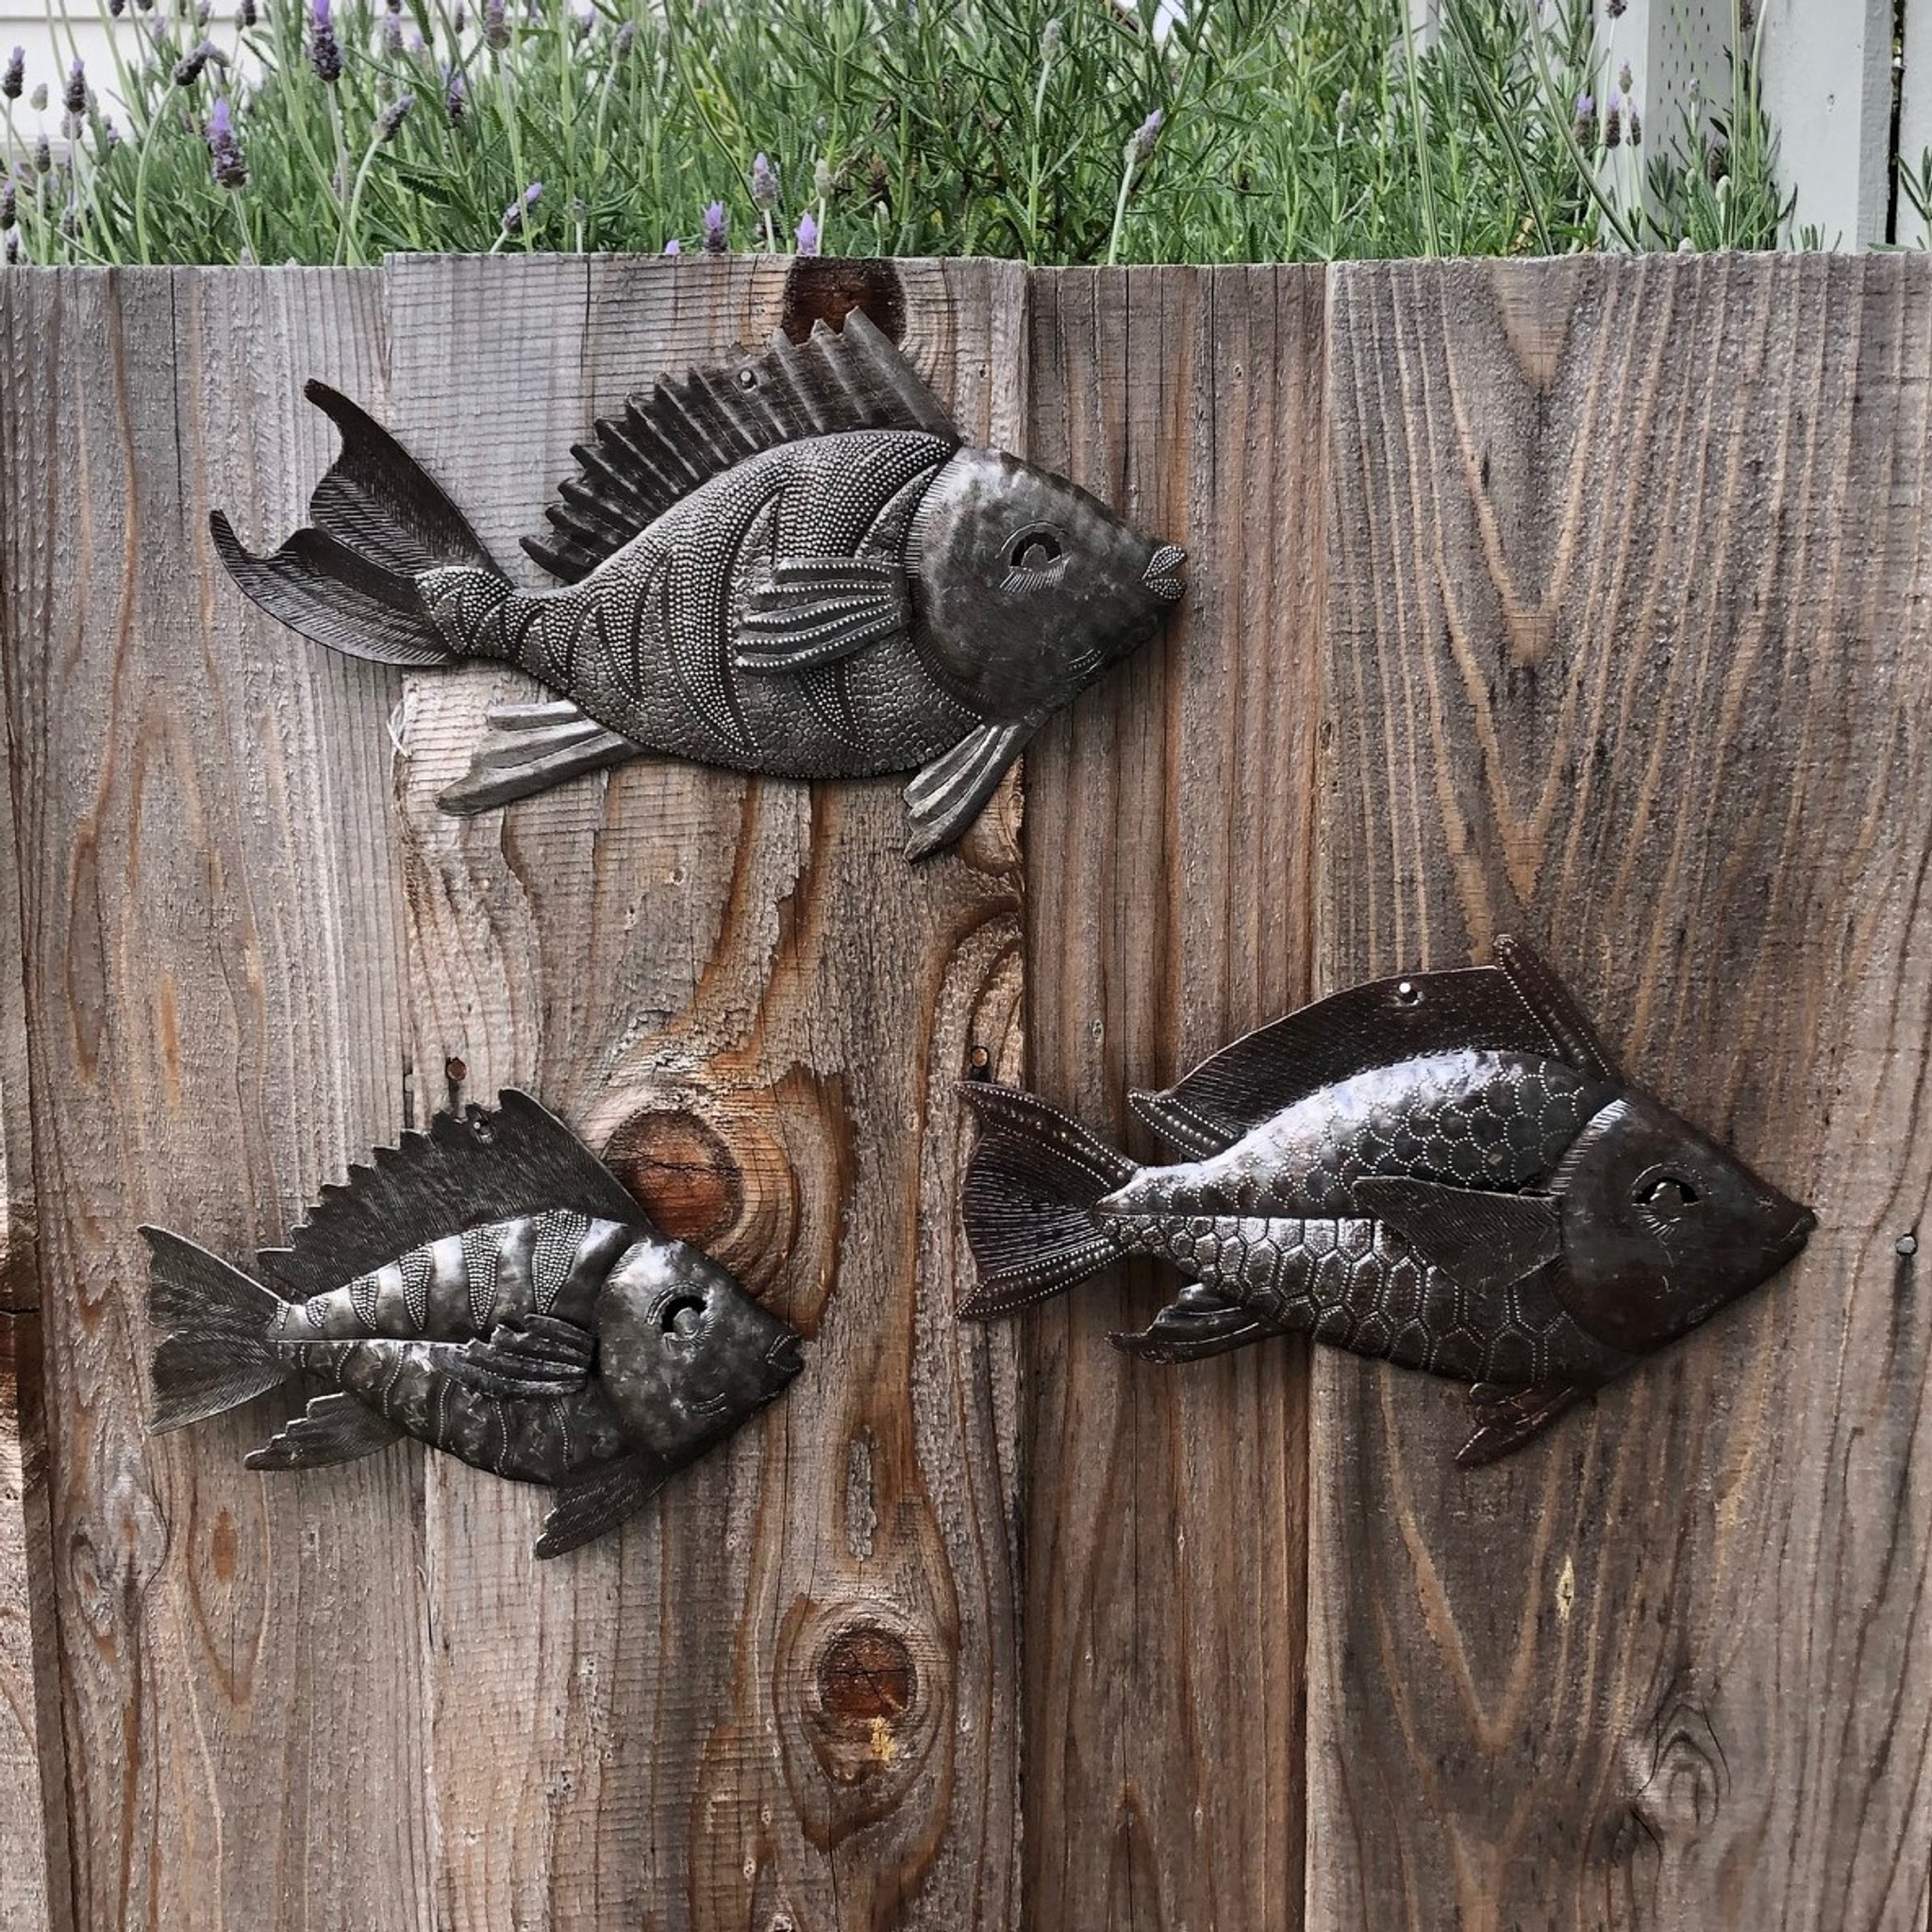 Metal Art Haiti School Of Fish Nautical Fish Set Of 3 Wall Hanging Beach Themed Home Decor Whimsical Catch Of The Day